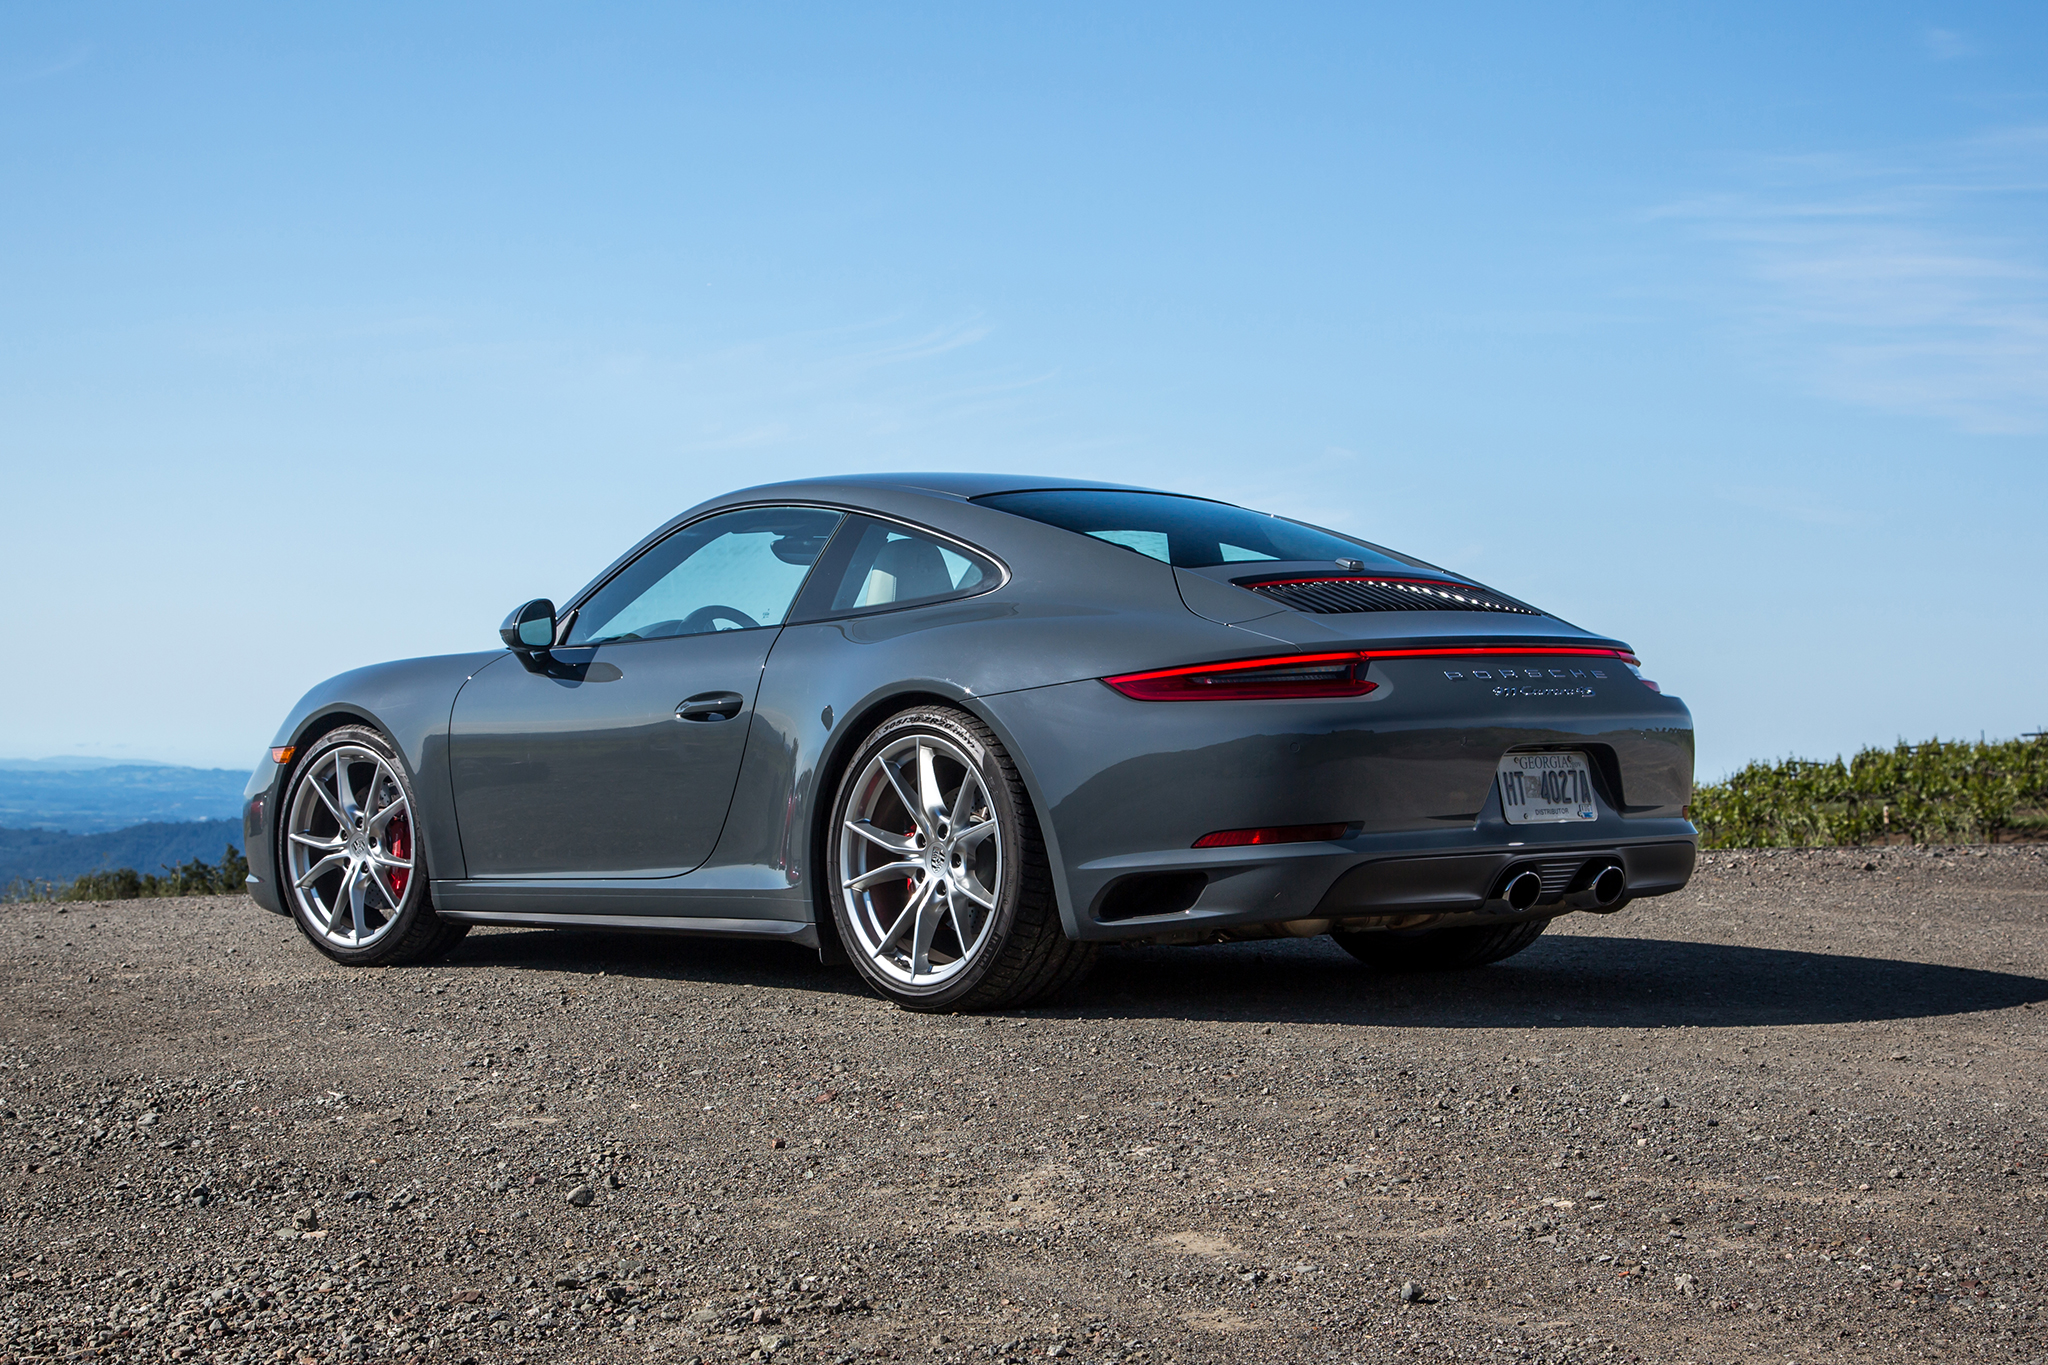 2017 Porsche 911 Carrera 4S Coupe photo - 1